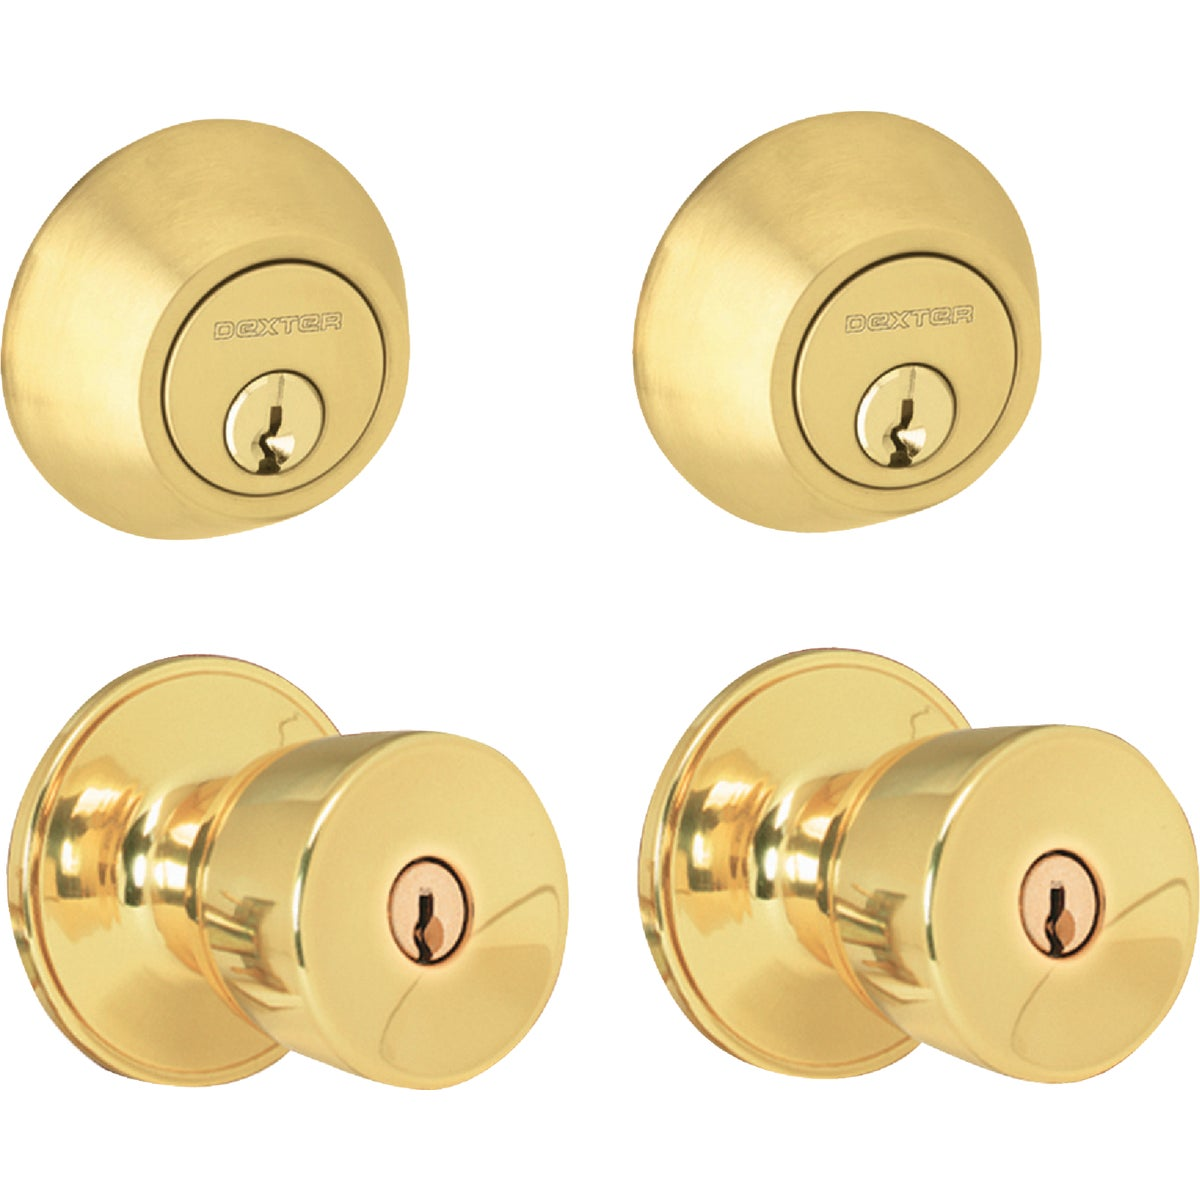 BB BYRON SECUTY TWIN - JCT60VBYR605 by Schlage Lock Co